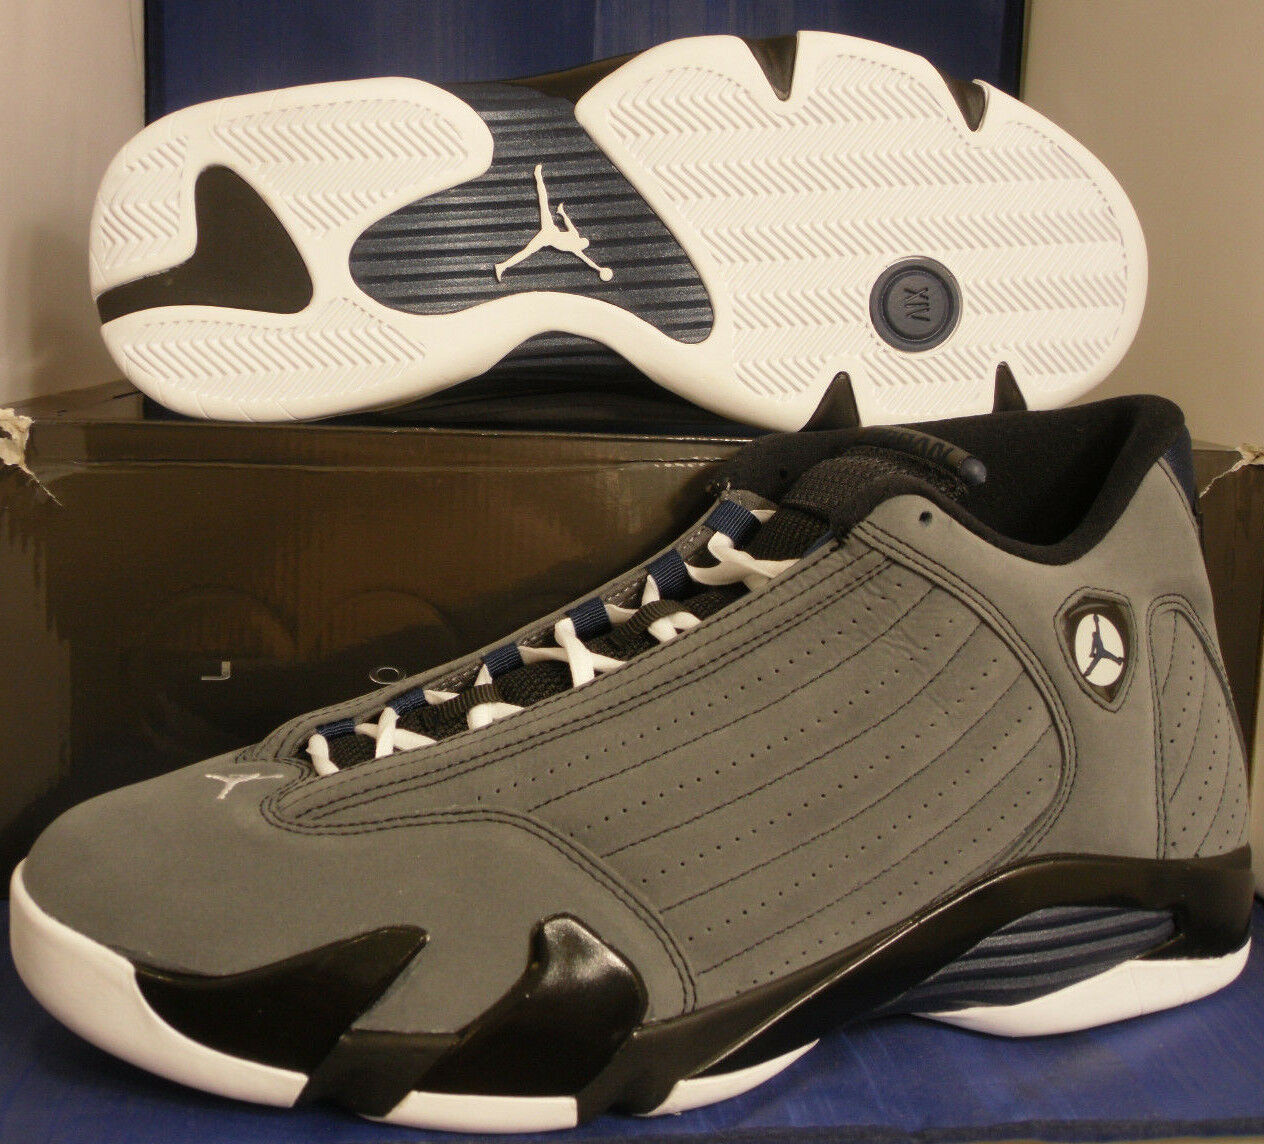 Nike Air Jordan 14 XIV Retro Light Graphite Grey Midnight Navy Price reduction The latest discount shoes for men and women